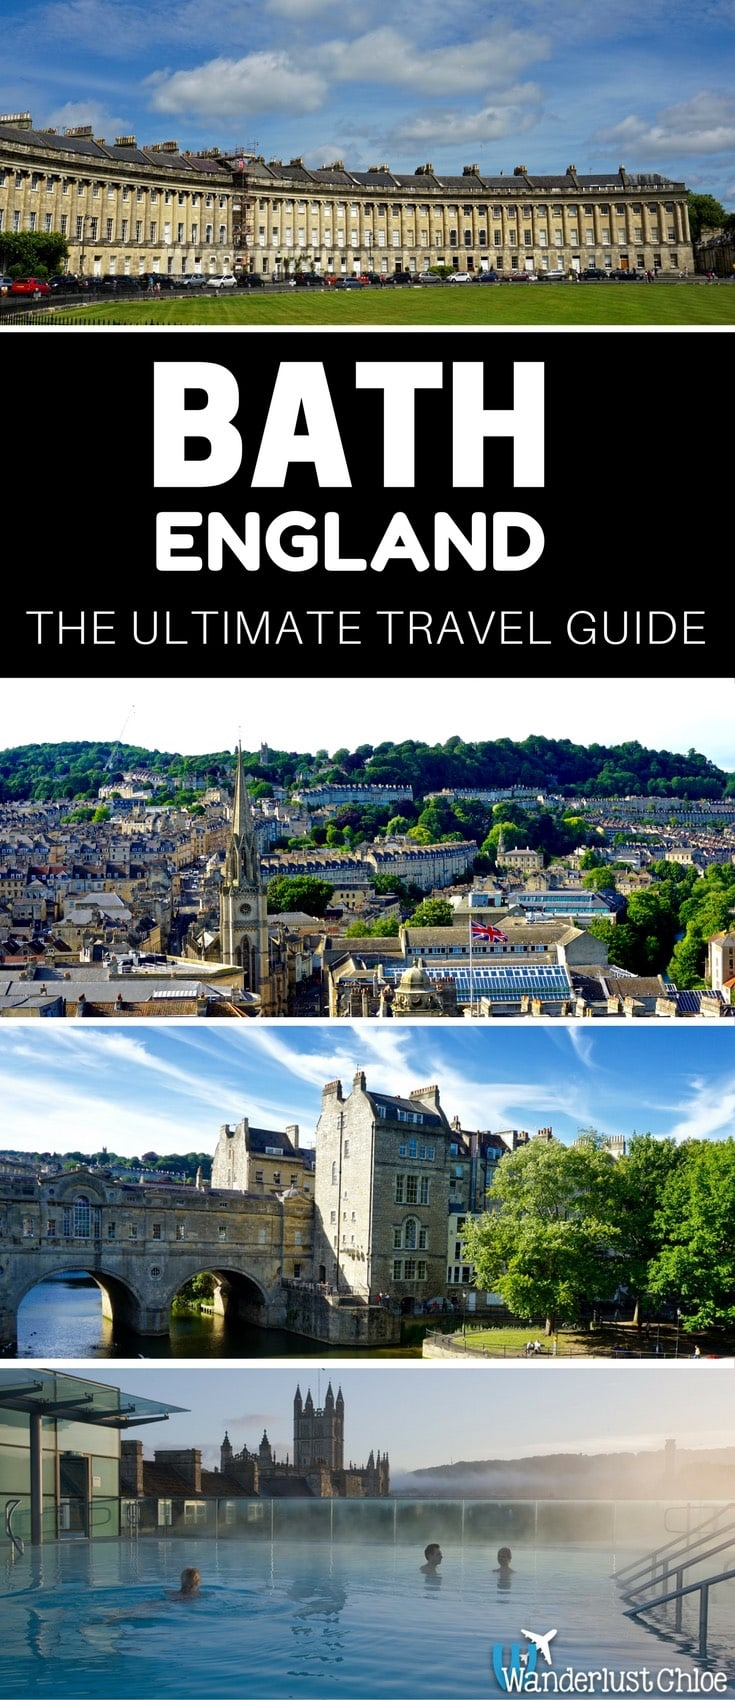 Bath England The Ultimate Travel Guide